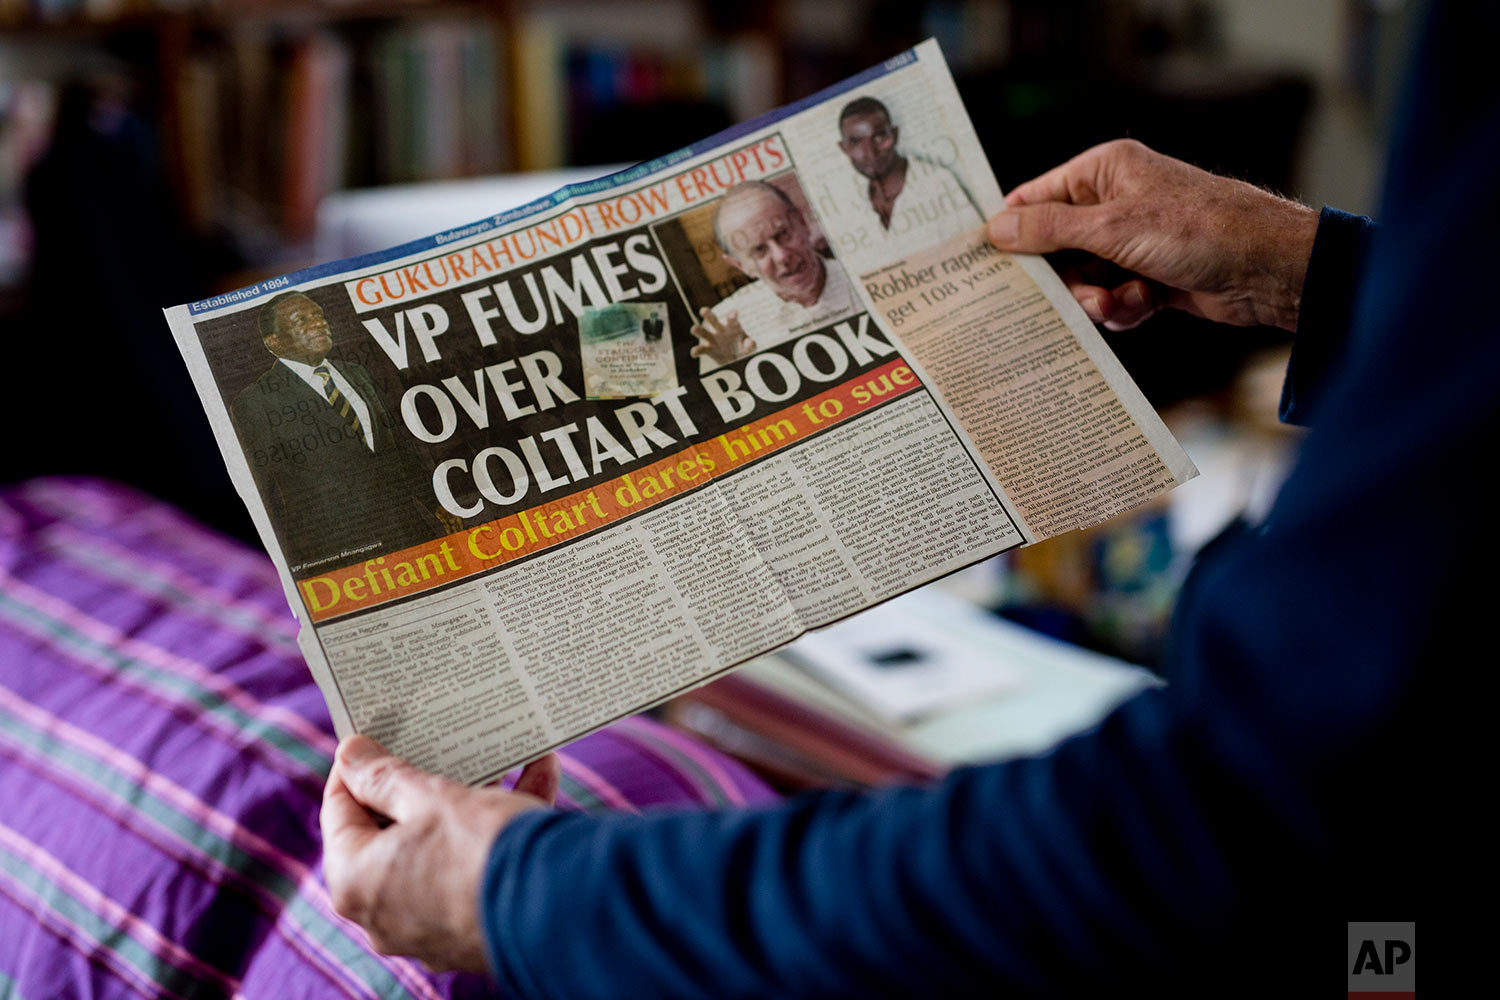 Human rights lawyer and opposition candidate in the July 30 legislative elections David Coltart holds a newspaper clipping in his Bulawayo, Zimbabwe residence. (AP Photo/Jerome Delay)